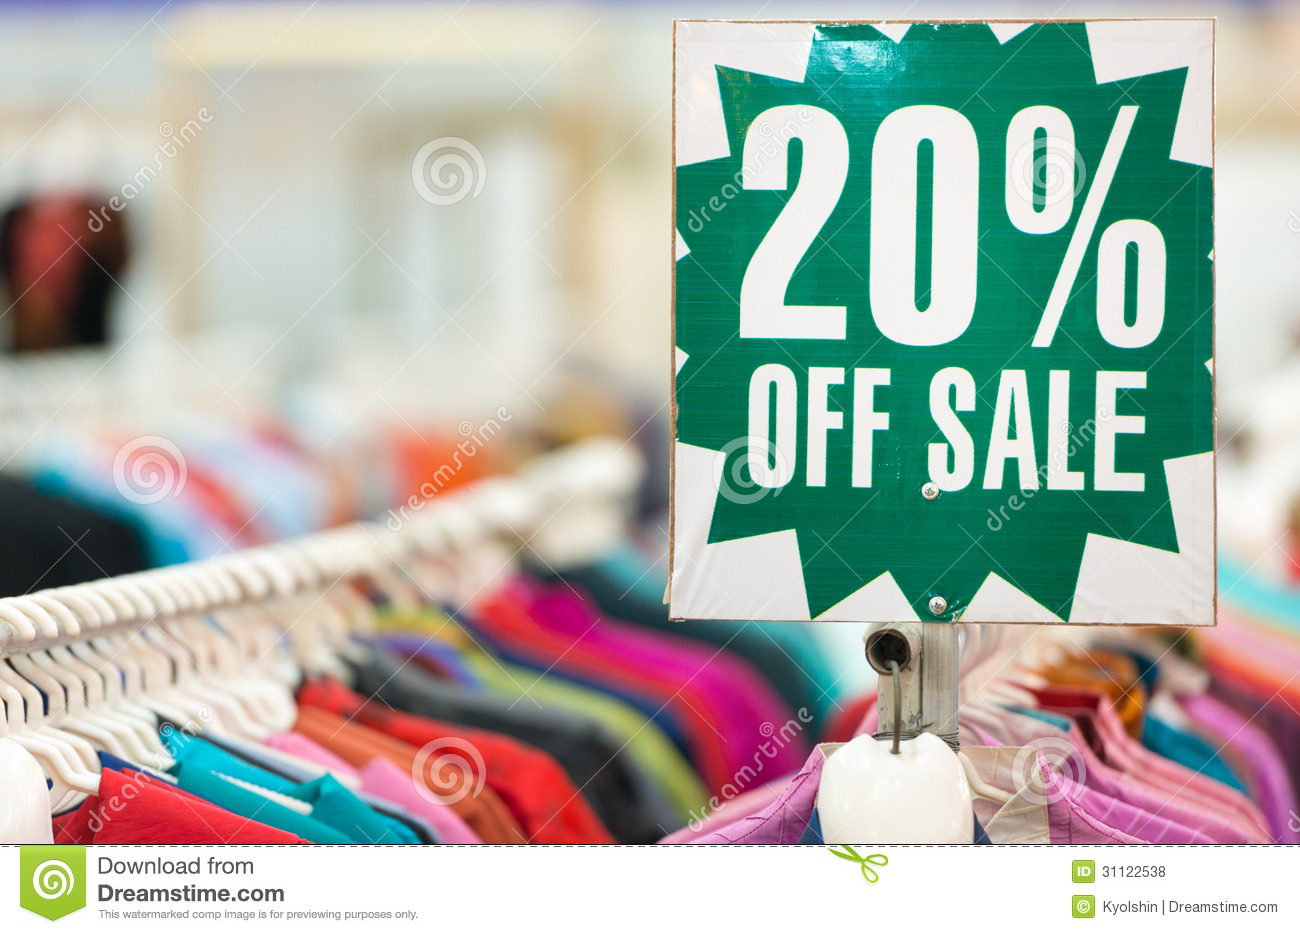 Clothing & Shoes Coupons Whether you're looking for high fashion or everyday wear, you can always save on clothes for men, women and kids. Get great discounts on brand-name dresses, suits, sportswear, lingerie, swimsuits, jeans, shoes, boots and even work uniforms with clothing coupons.